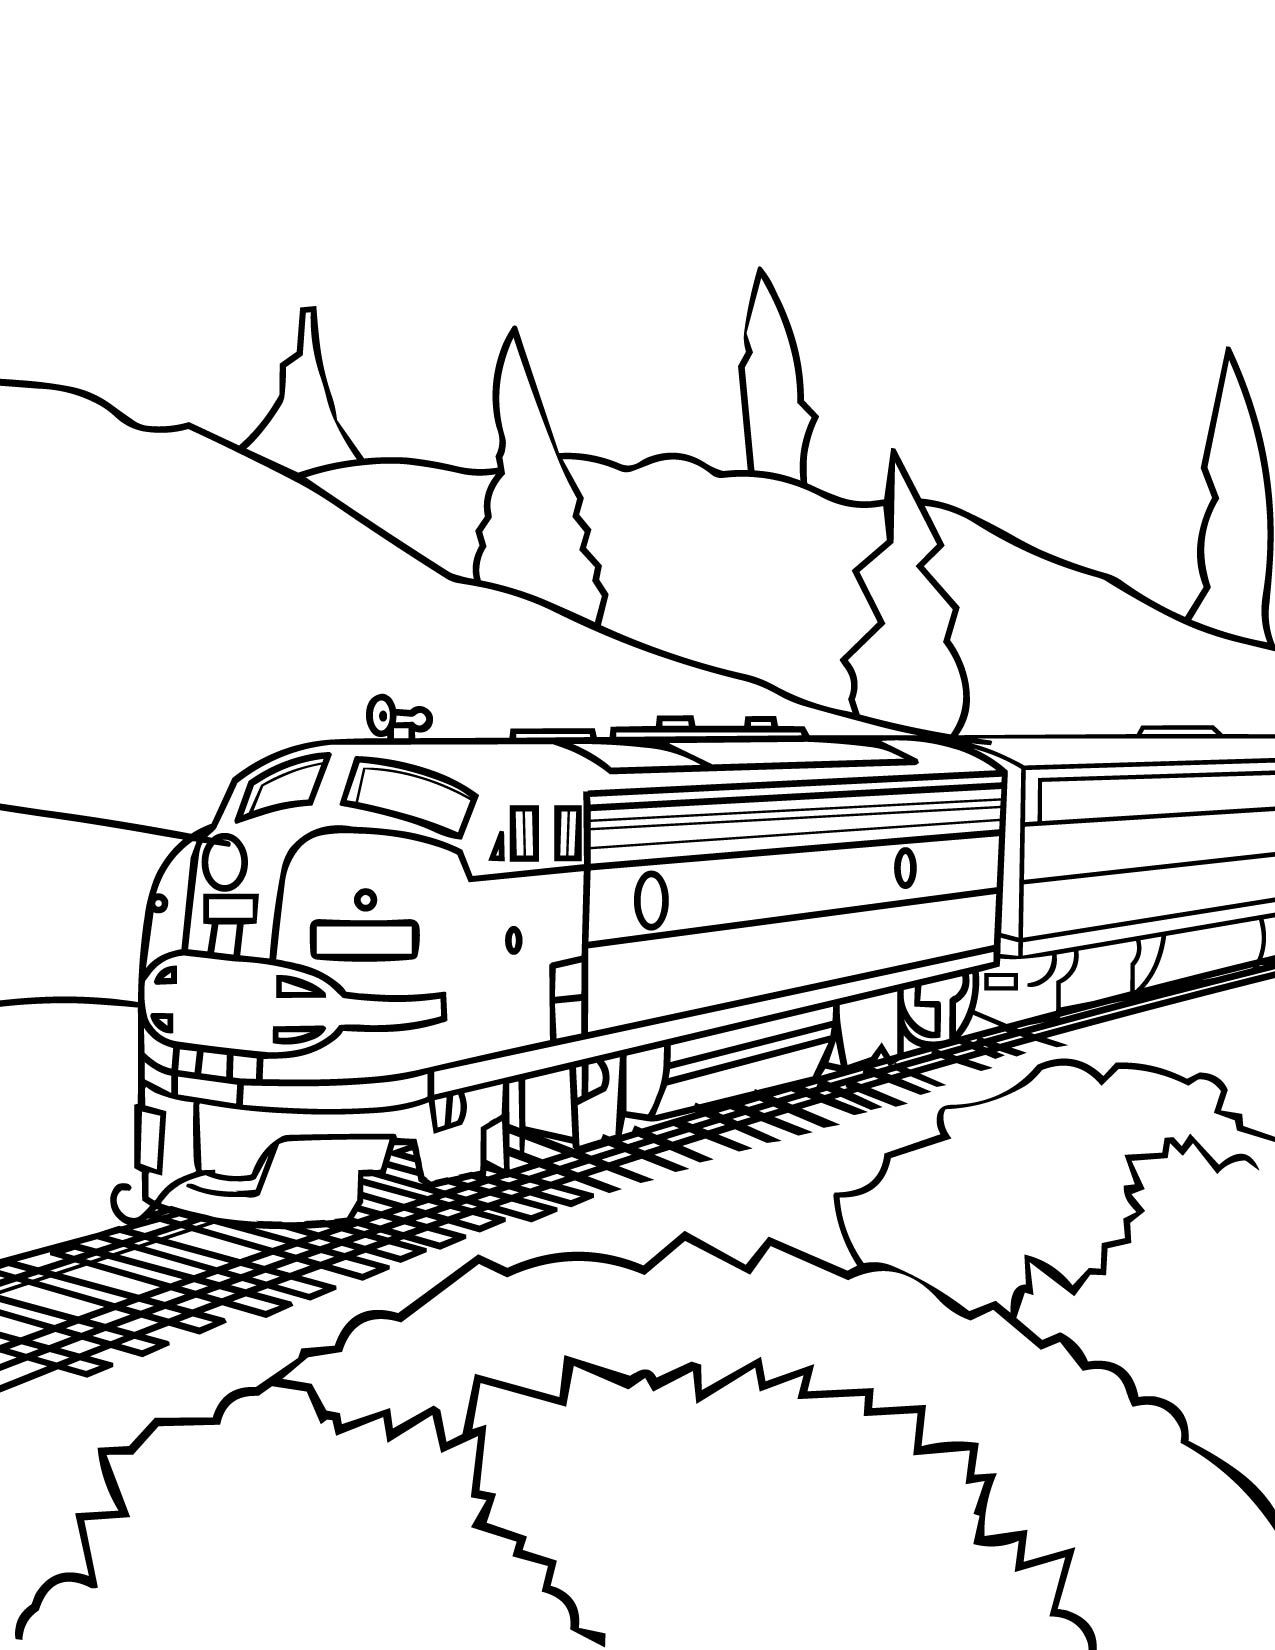 Free printable coloring book pages connect the dot pages for Train coloring book pages